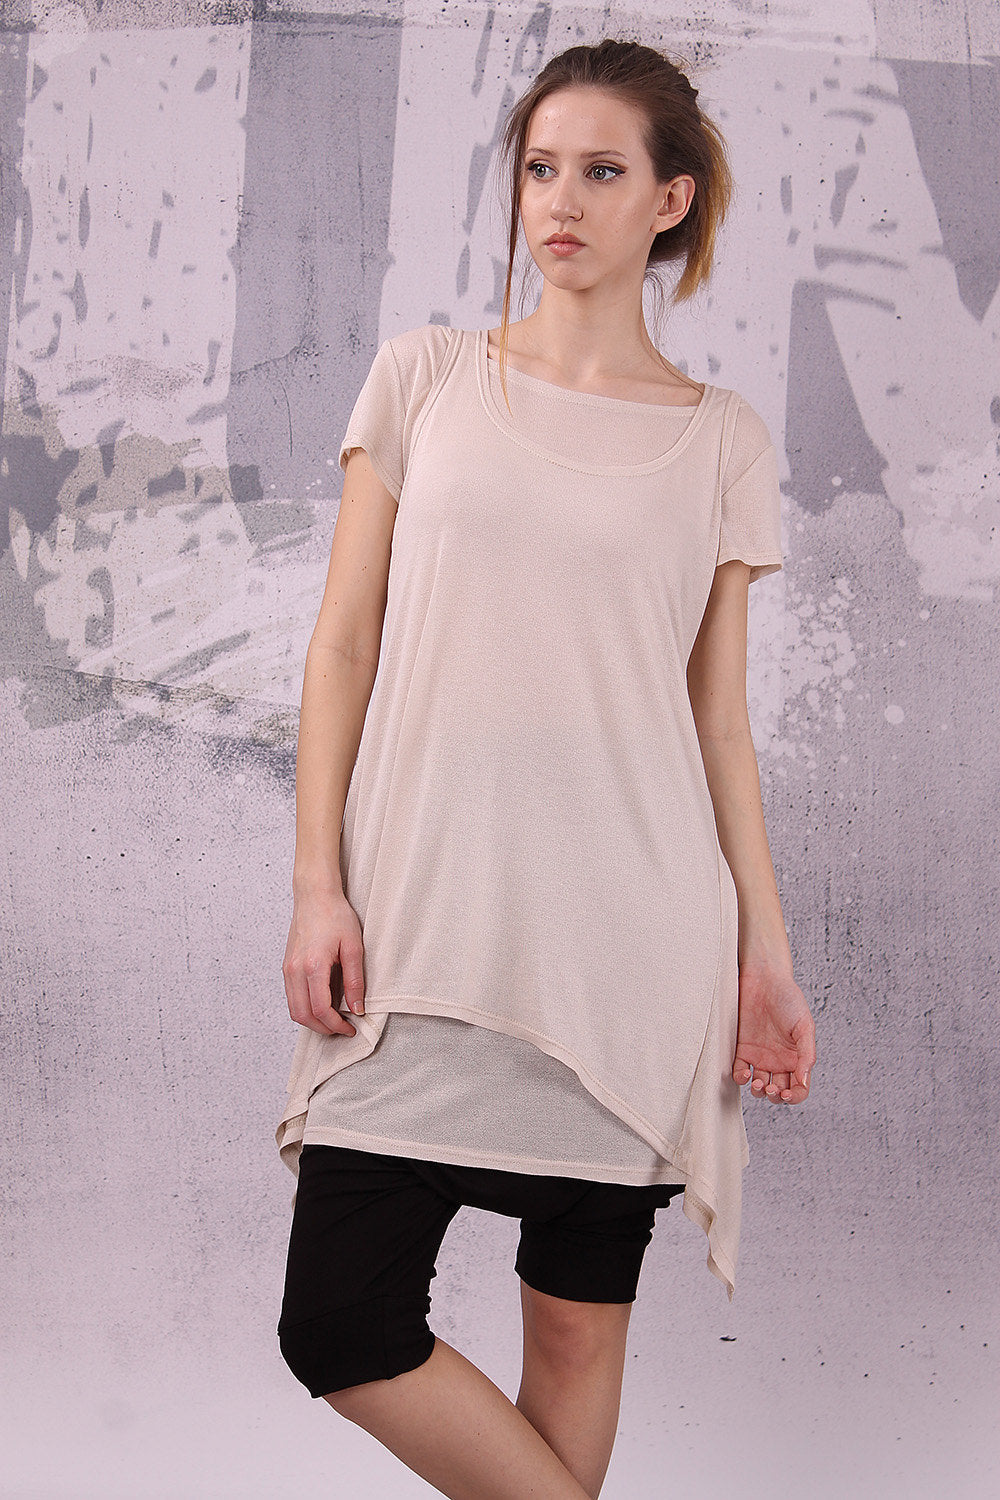 Loose Tunic, Asymmetric beige tunic, Set of TWO pcs, loose top, tank top, Long top, Long tunic, short sleeves, Asymmetric top - UM-032-CO